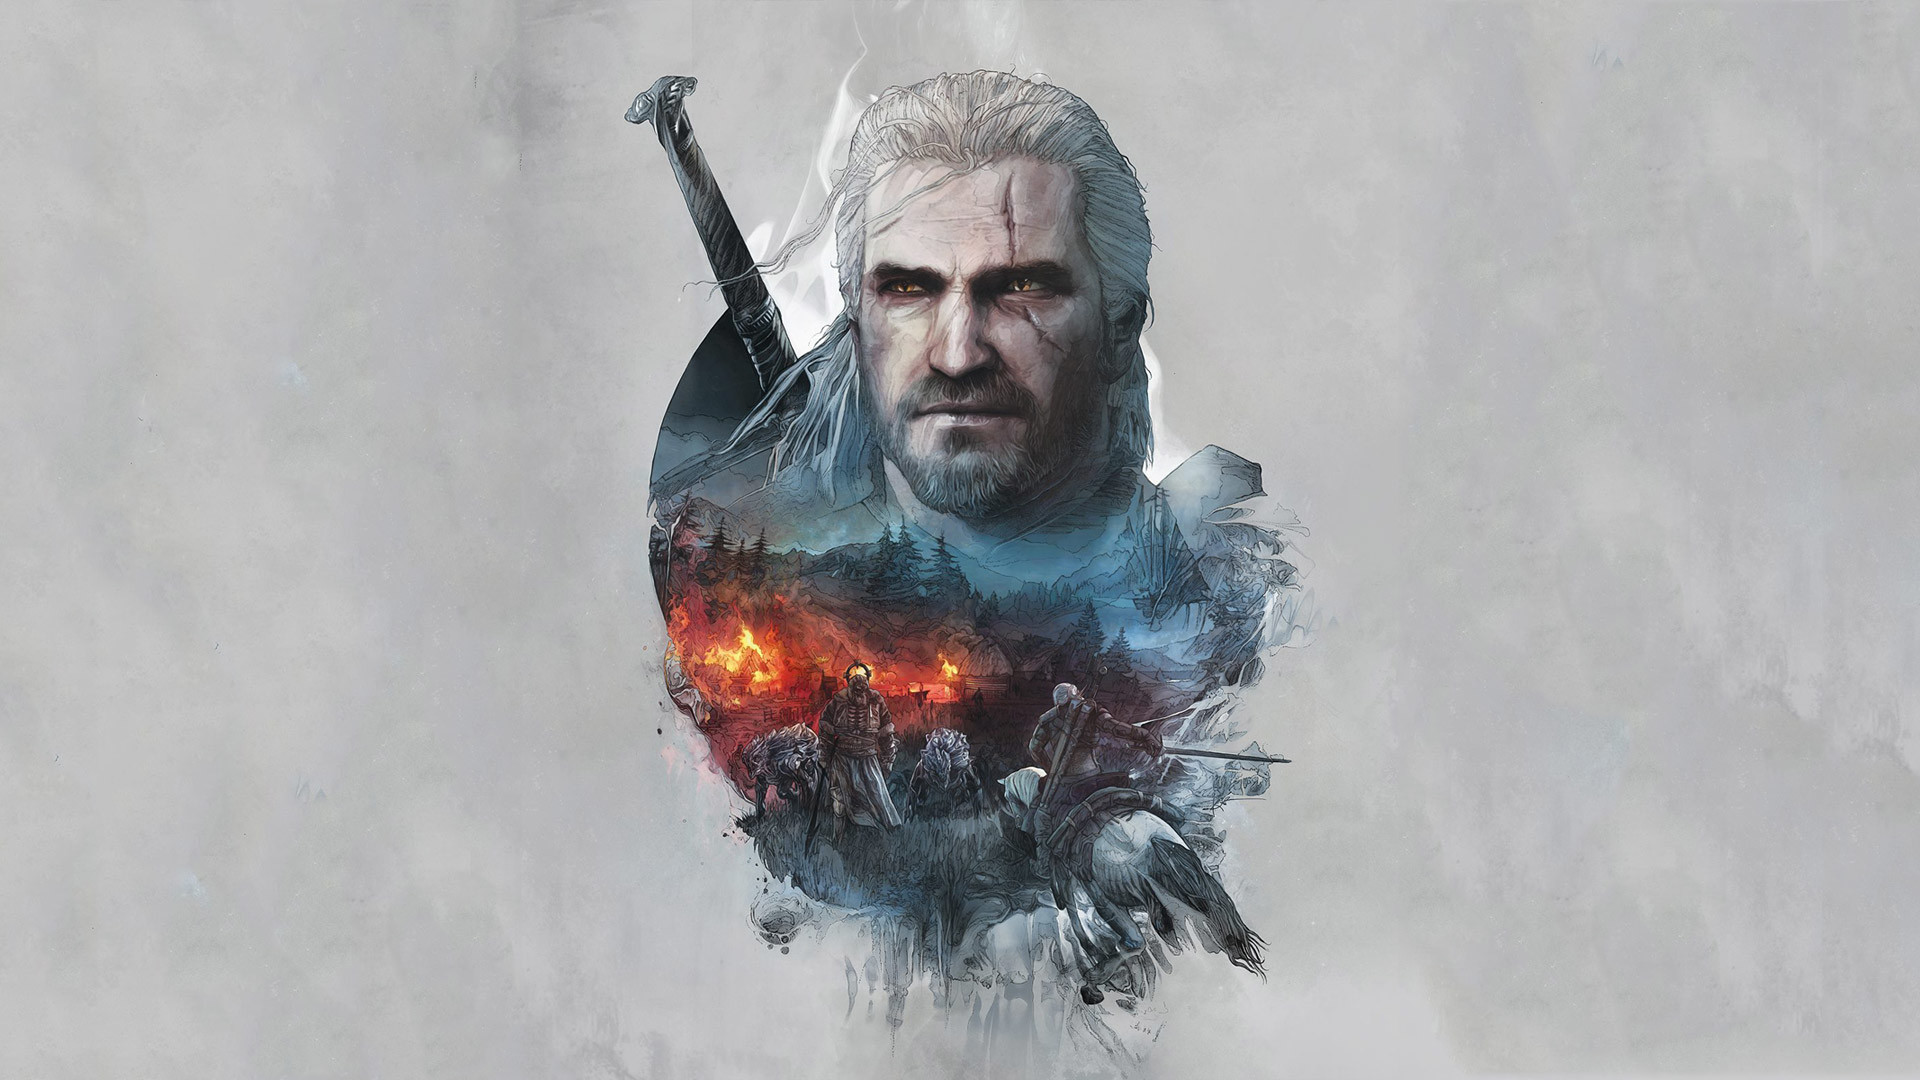 Free The Witcher 3 Wallpaper in 1920×1080